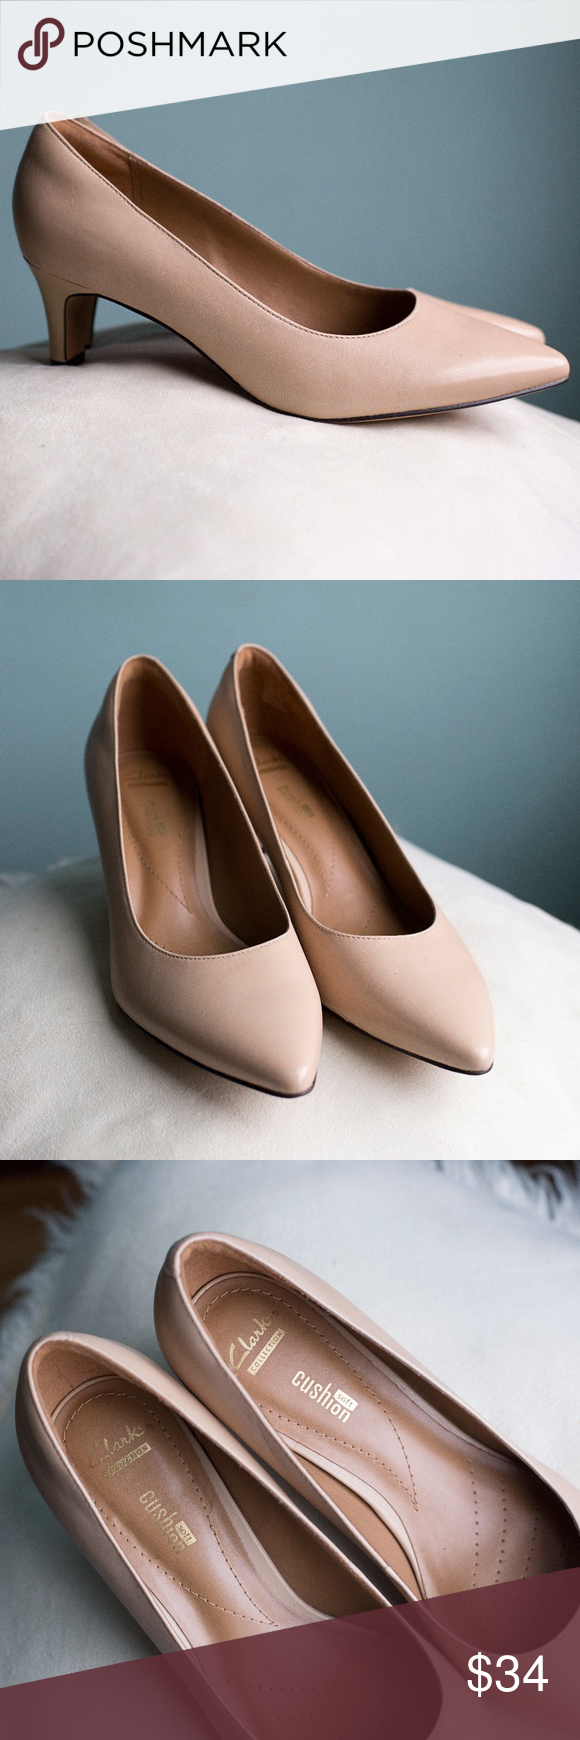 """4683ec38336 Clarks Crewso Wick Nude Pump Perfect nude pumps that are not too high but  not too short (2 1 4"""" heel) and are made by Clarks so you know they are ..."""